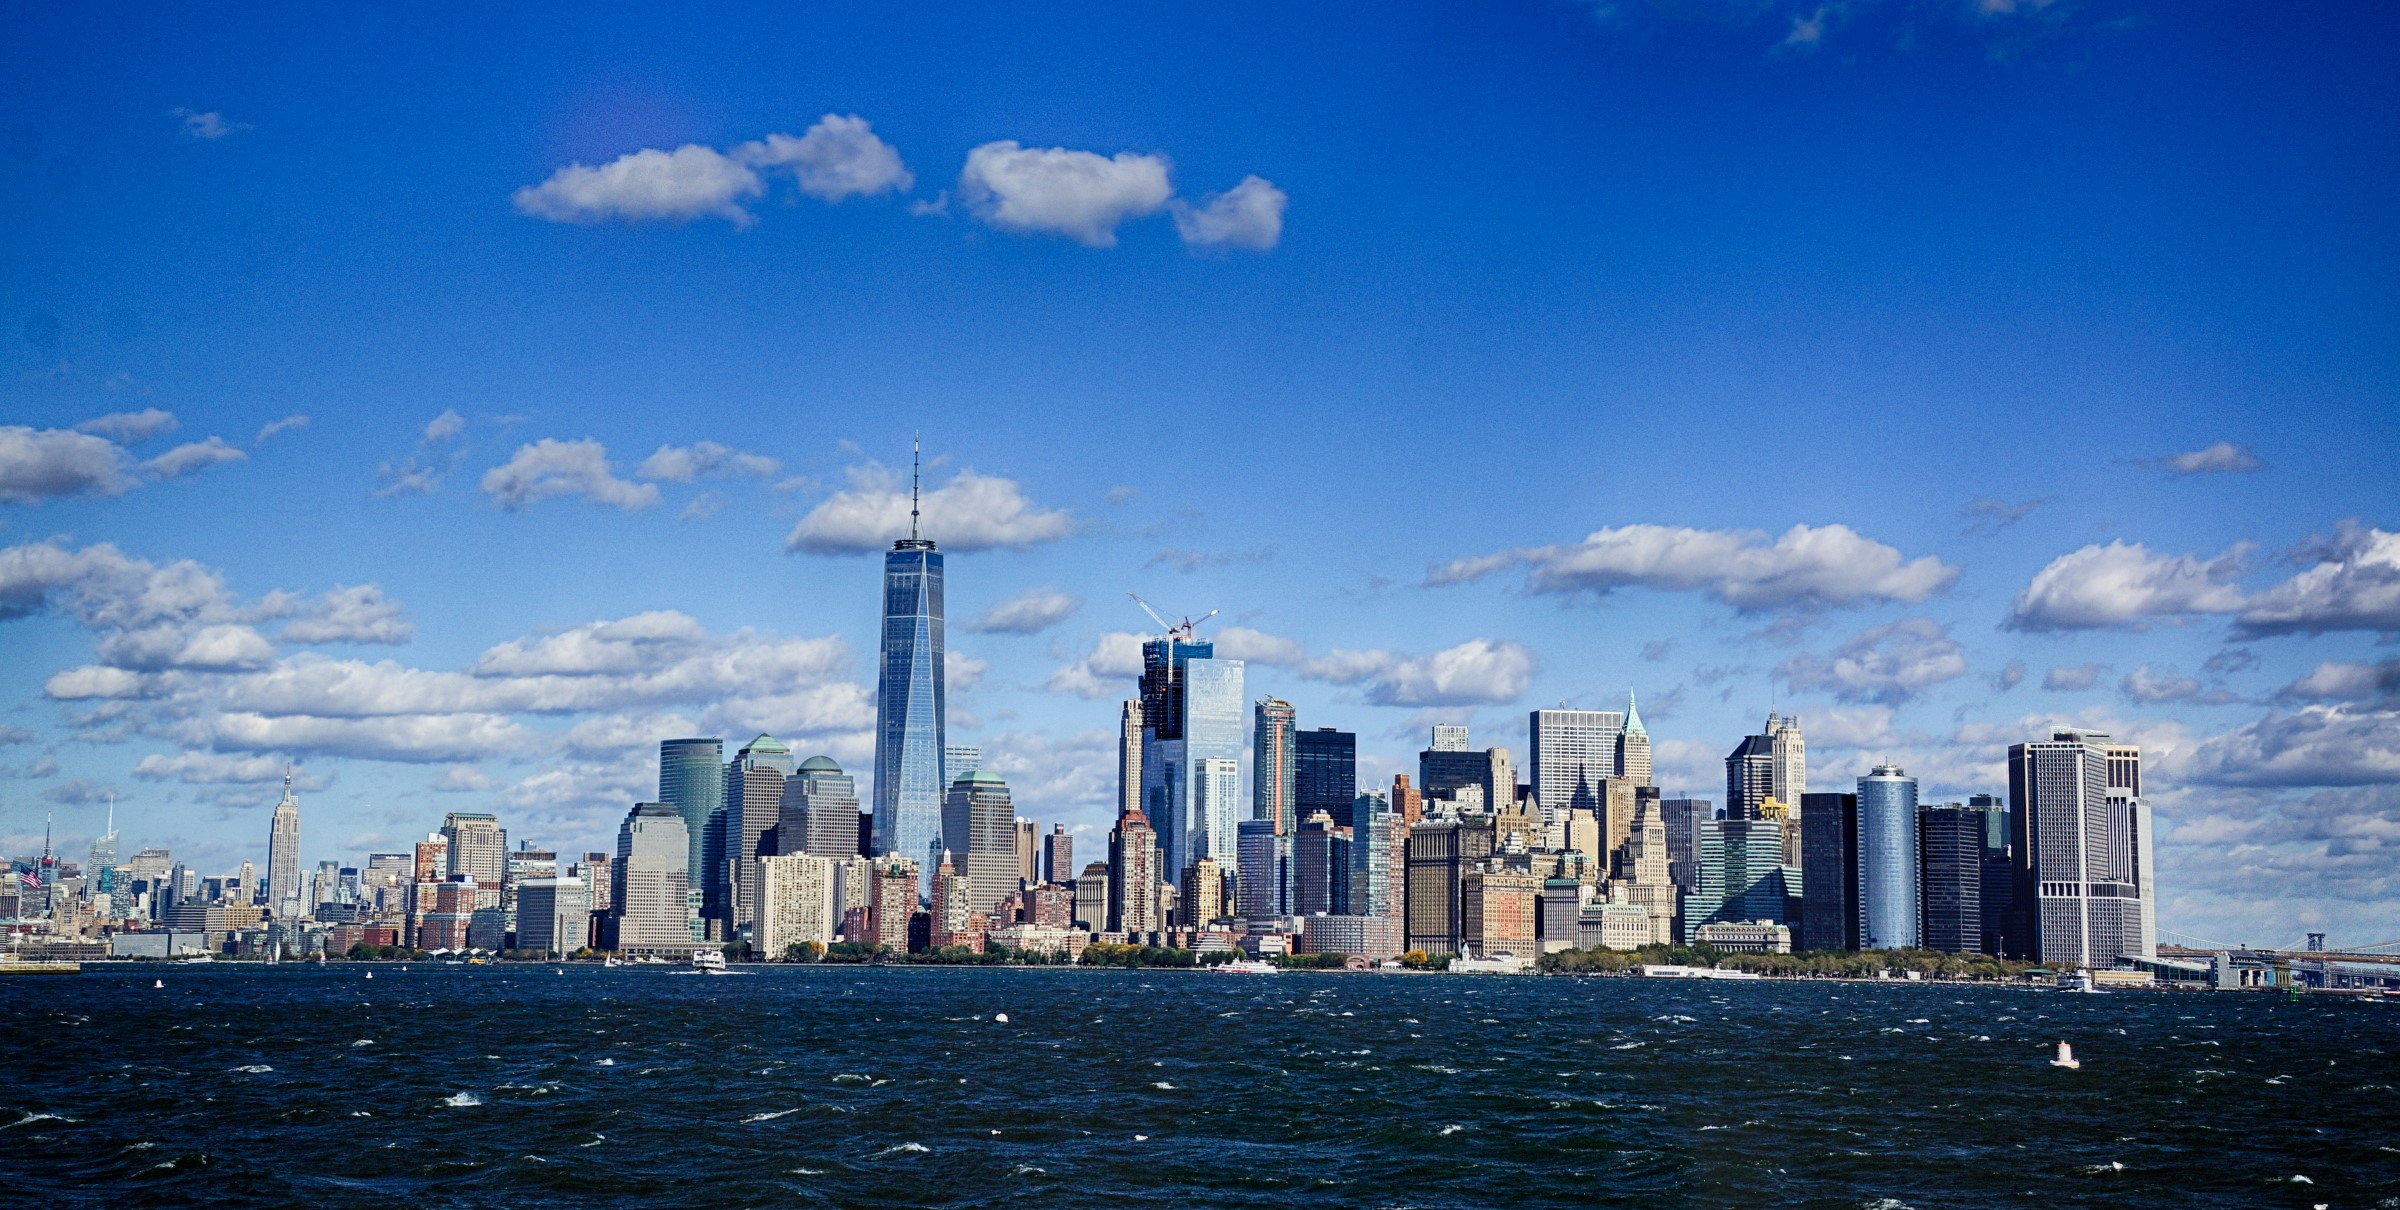 NYC Skyline with Freedom Tower